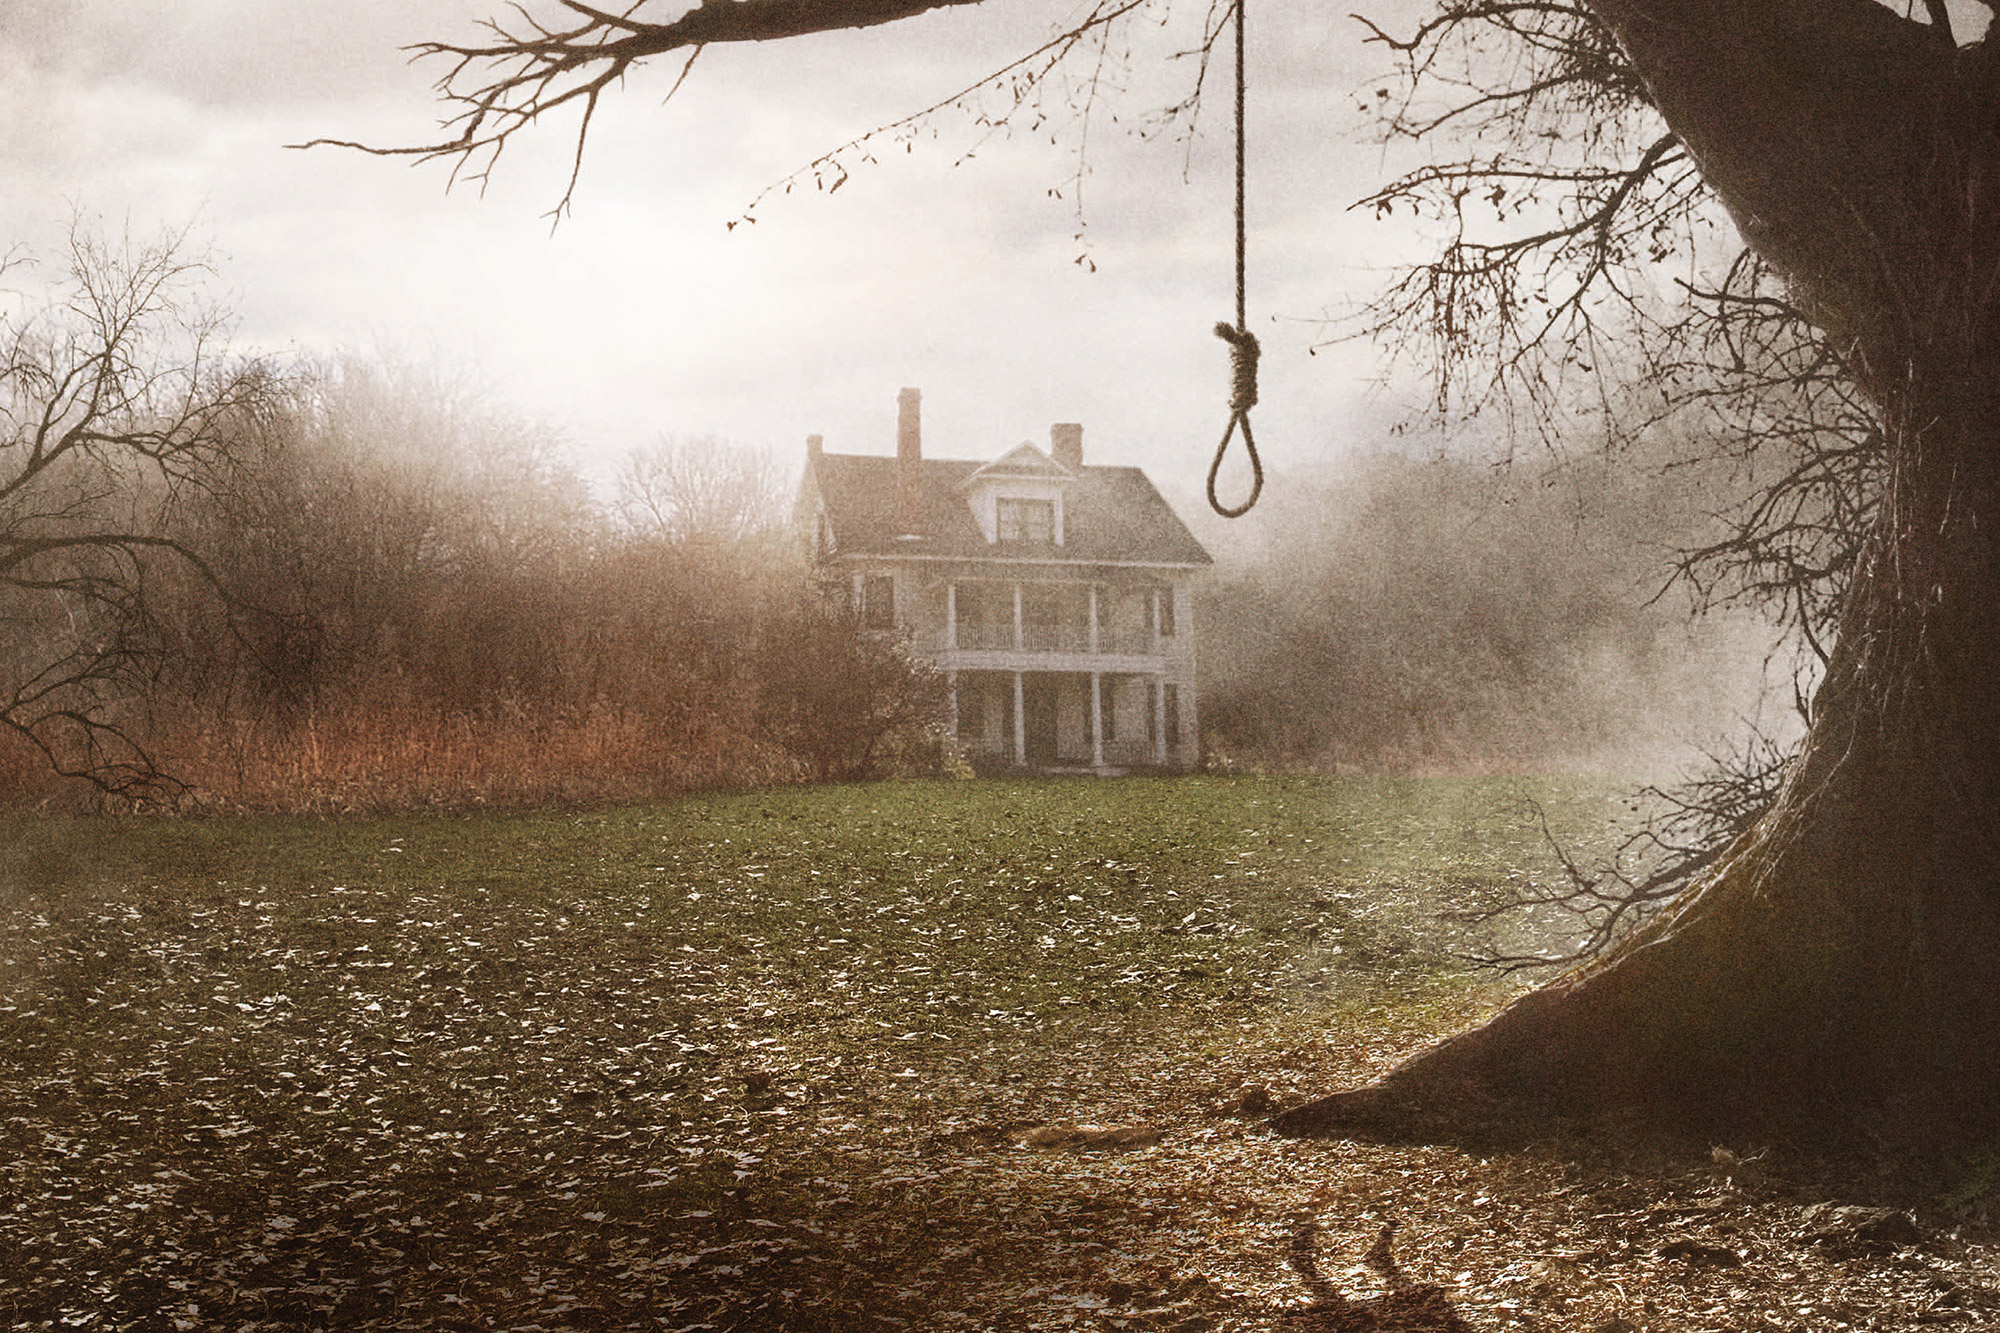 The R.I. home featured in The Conjuring is pictured.